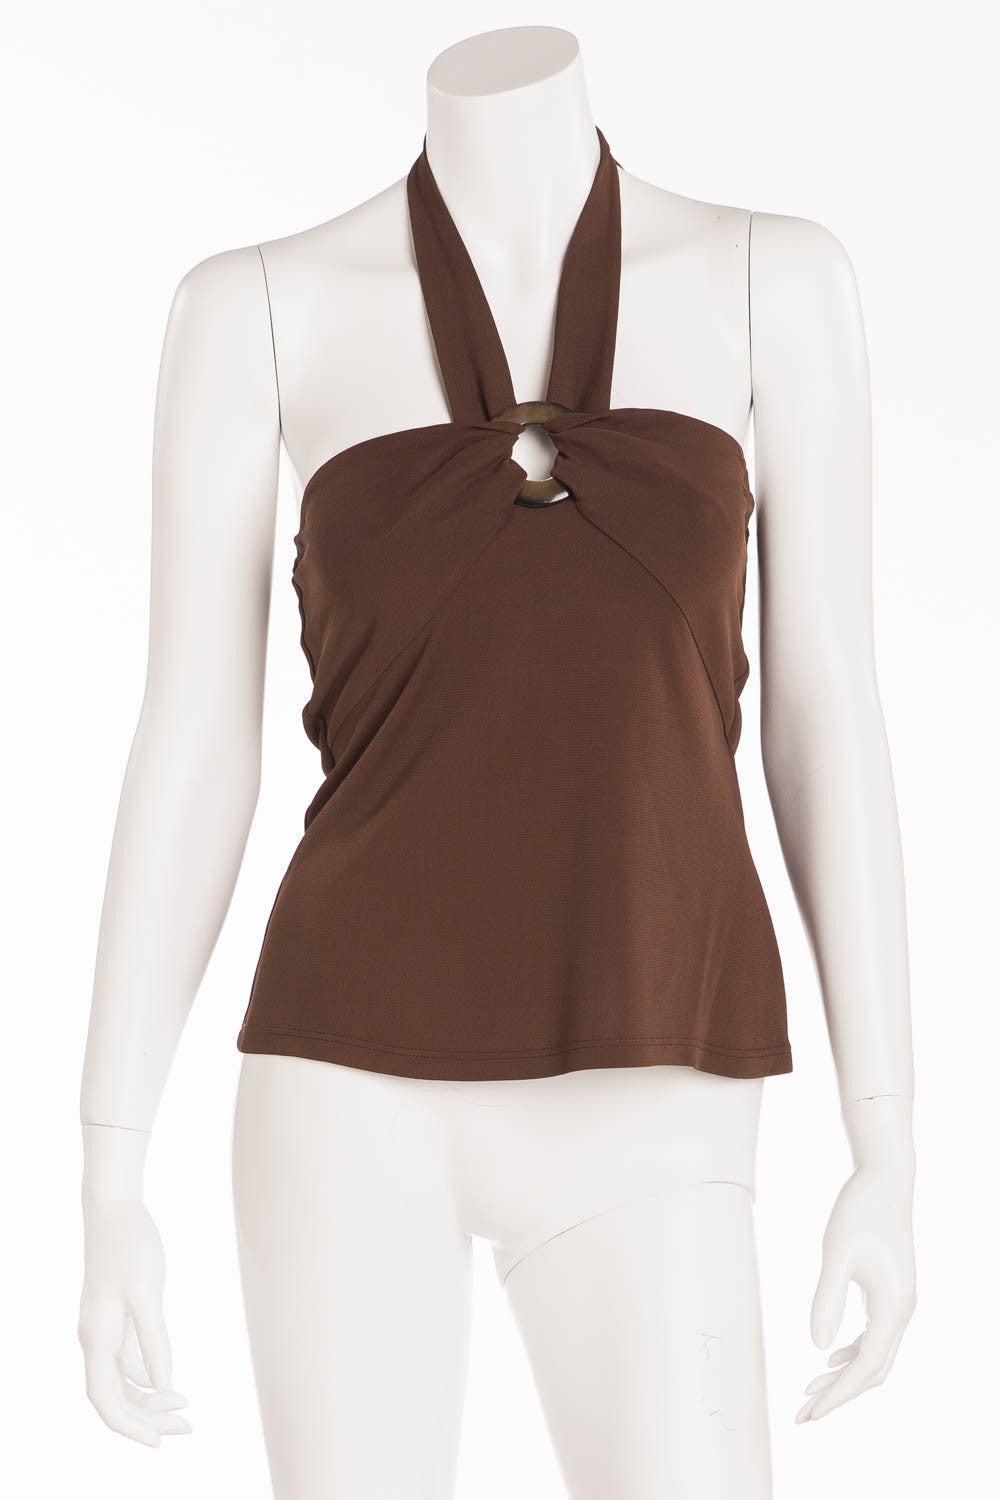 La Perla - Brown Halter Neck Top - IT 44